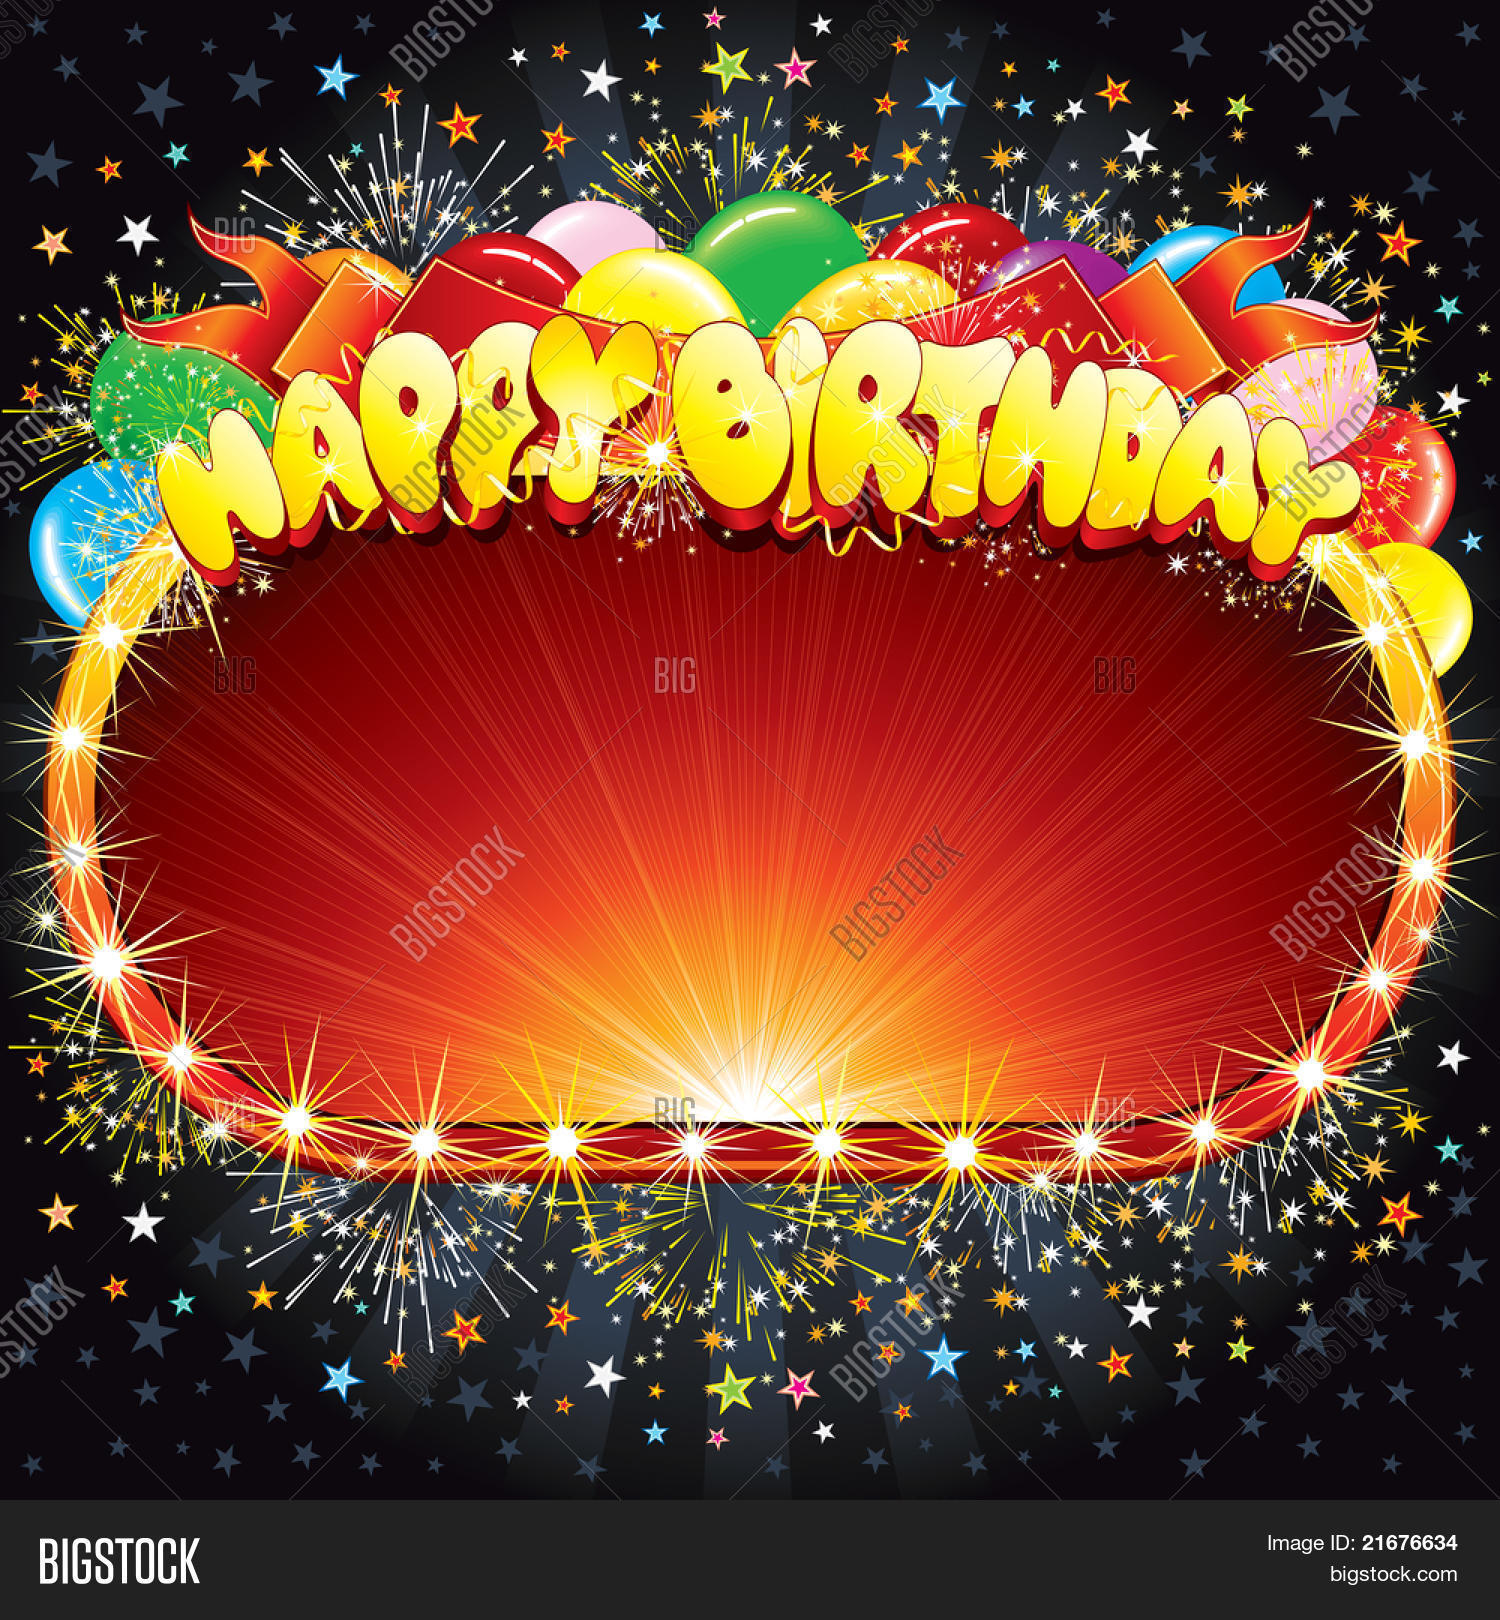 background images for birthday banner ; 21676634